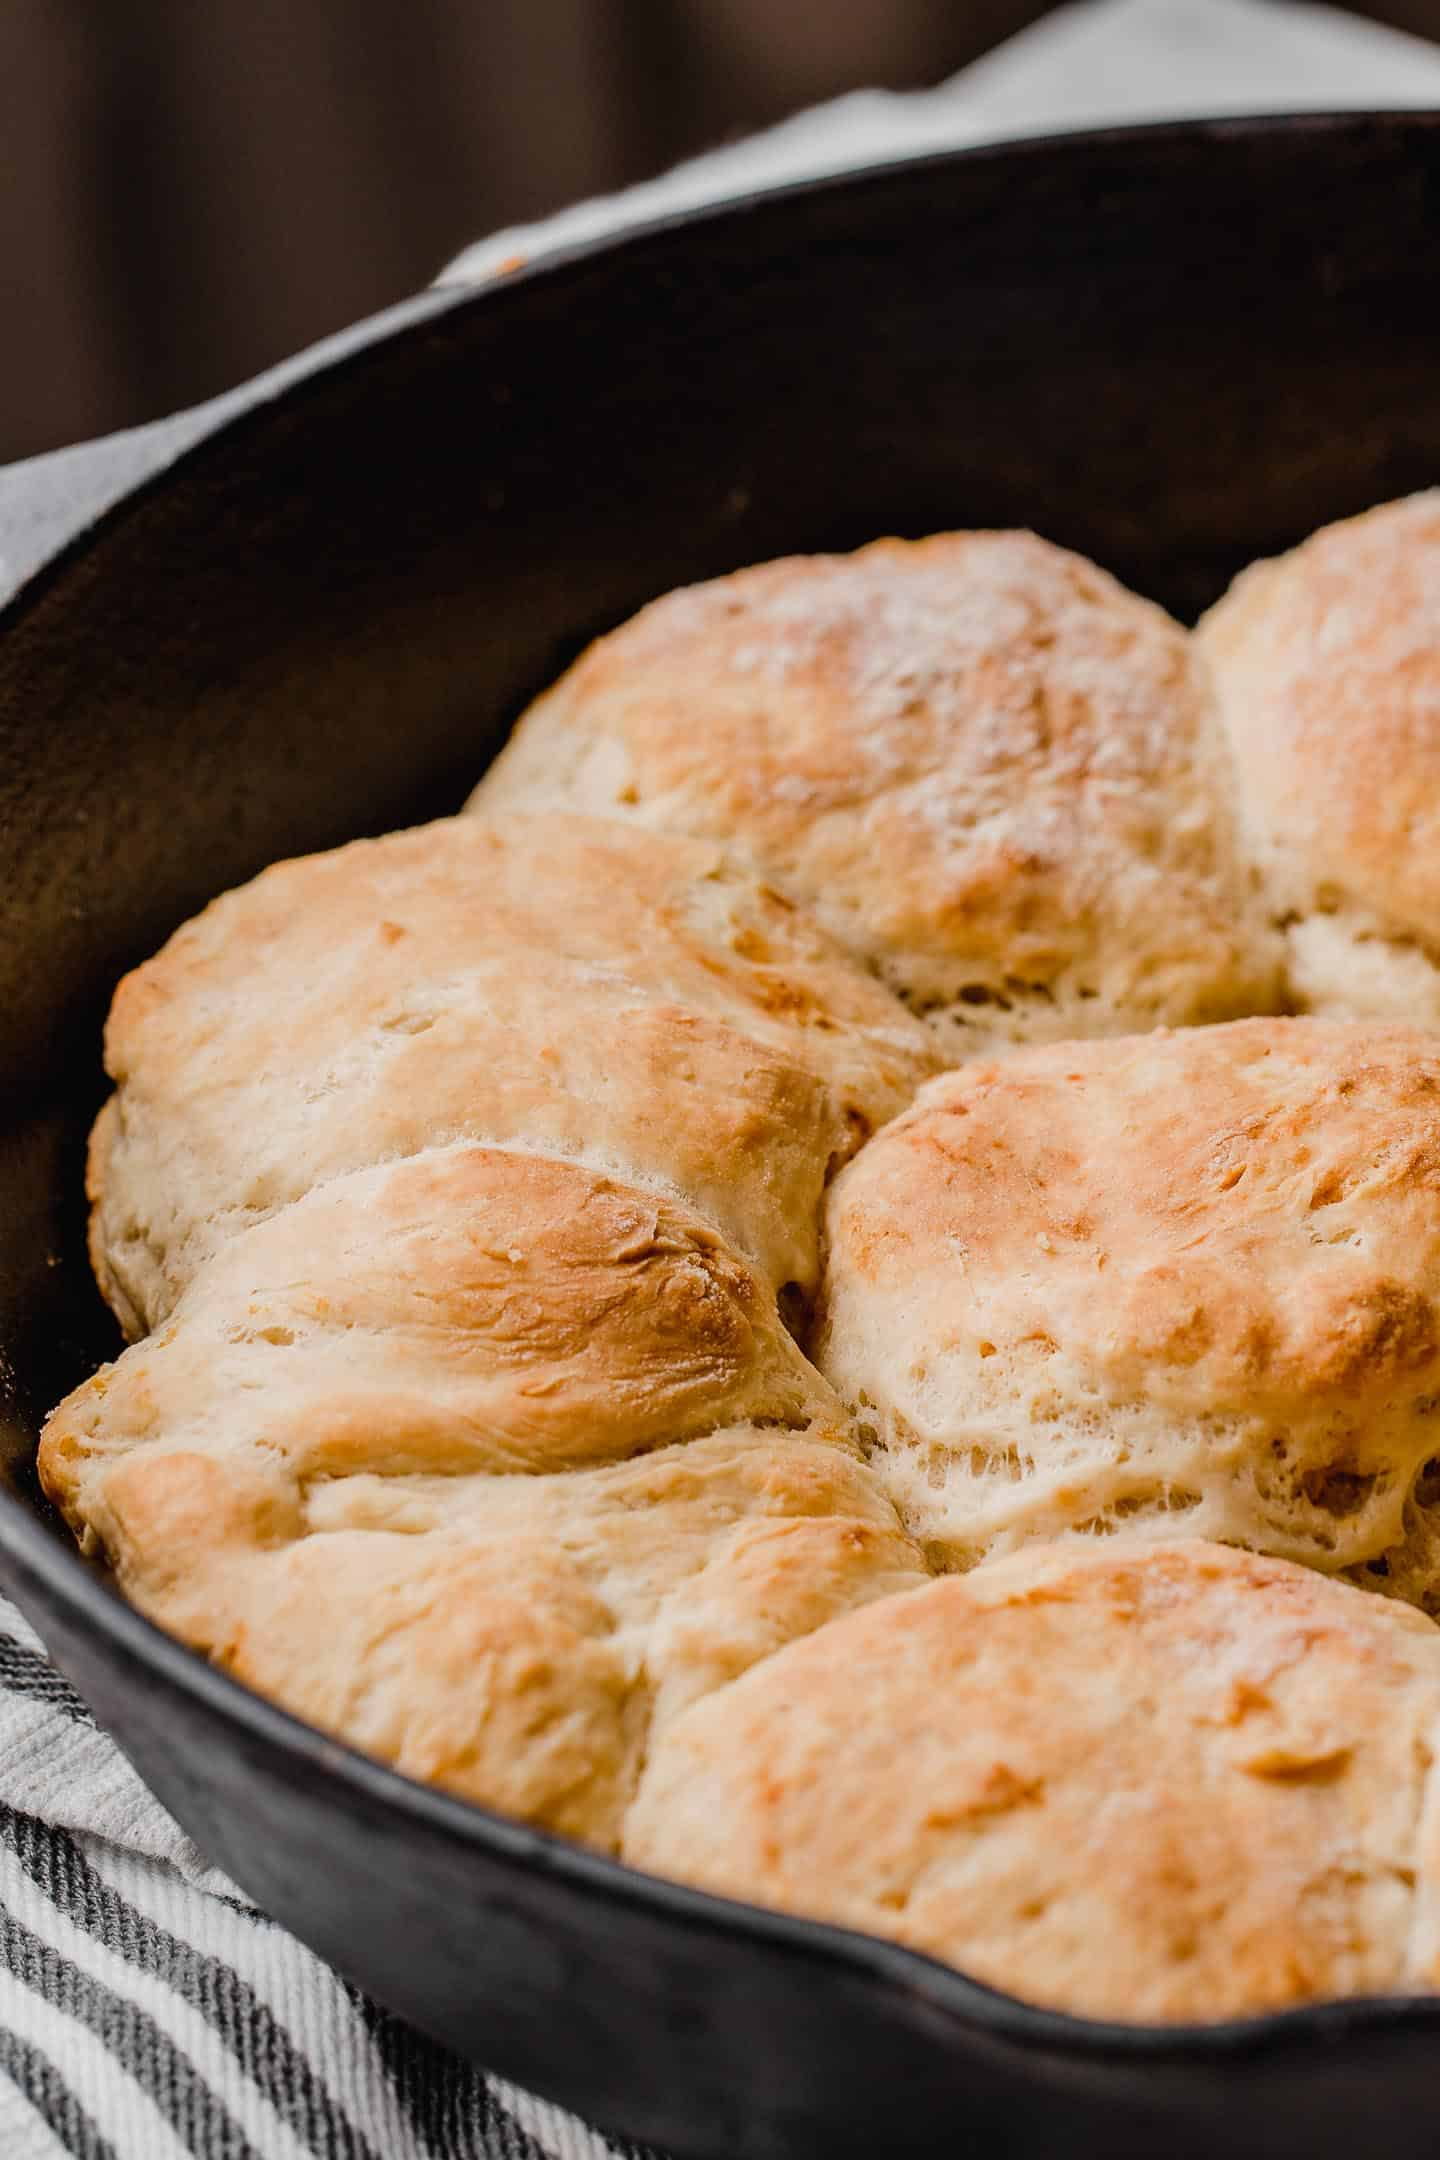 Sourdough biscuits baked in a skillet.